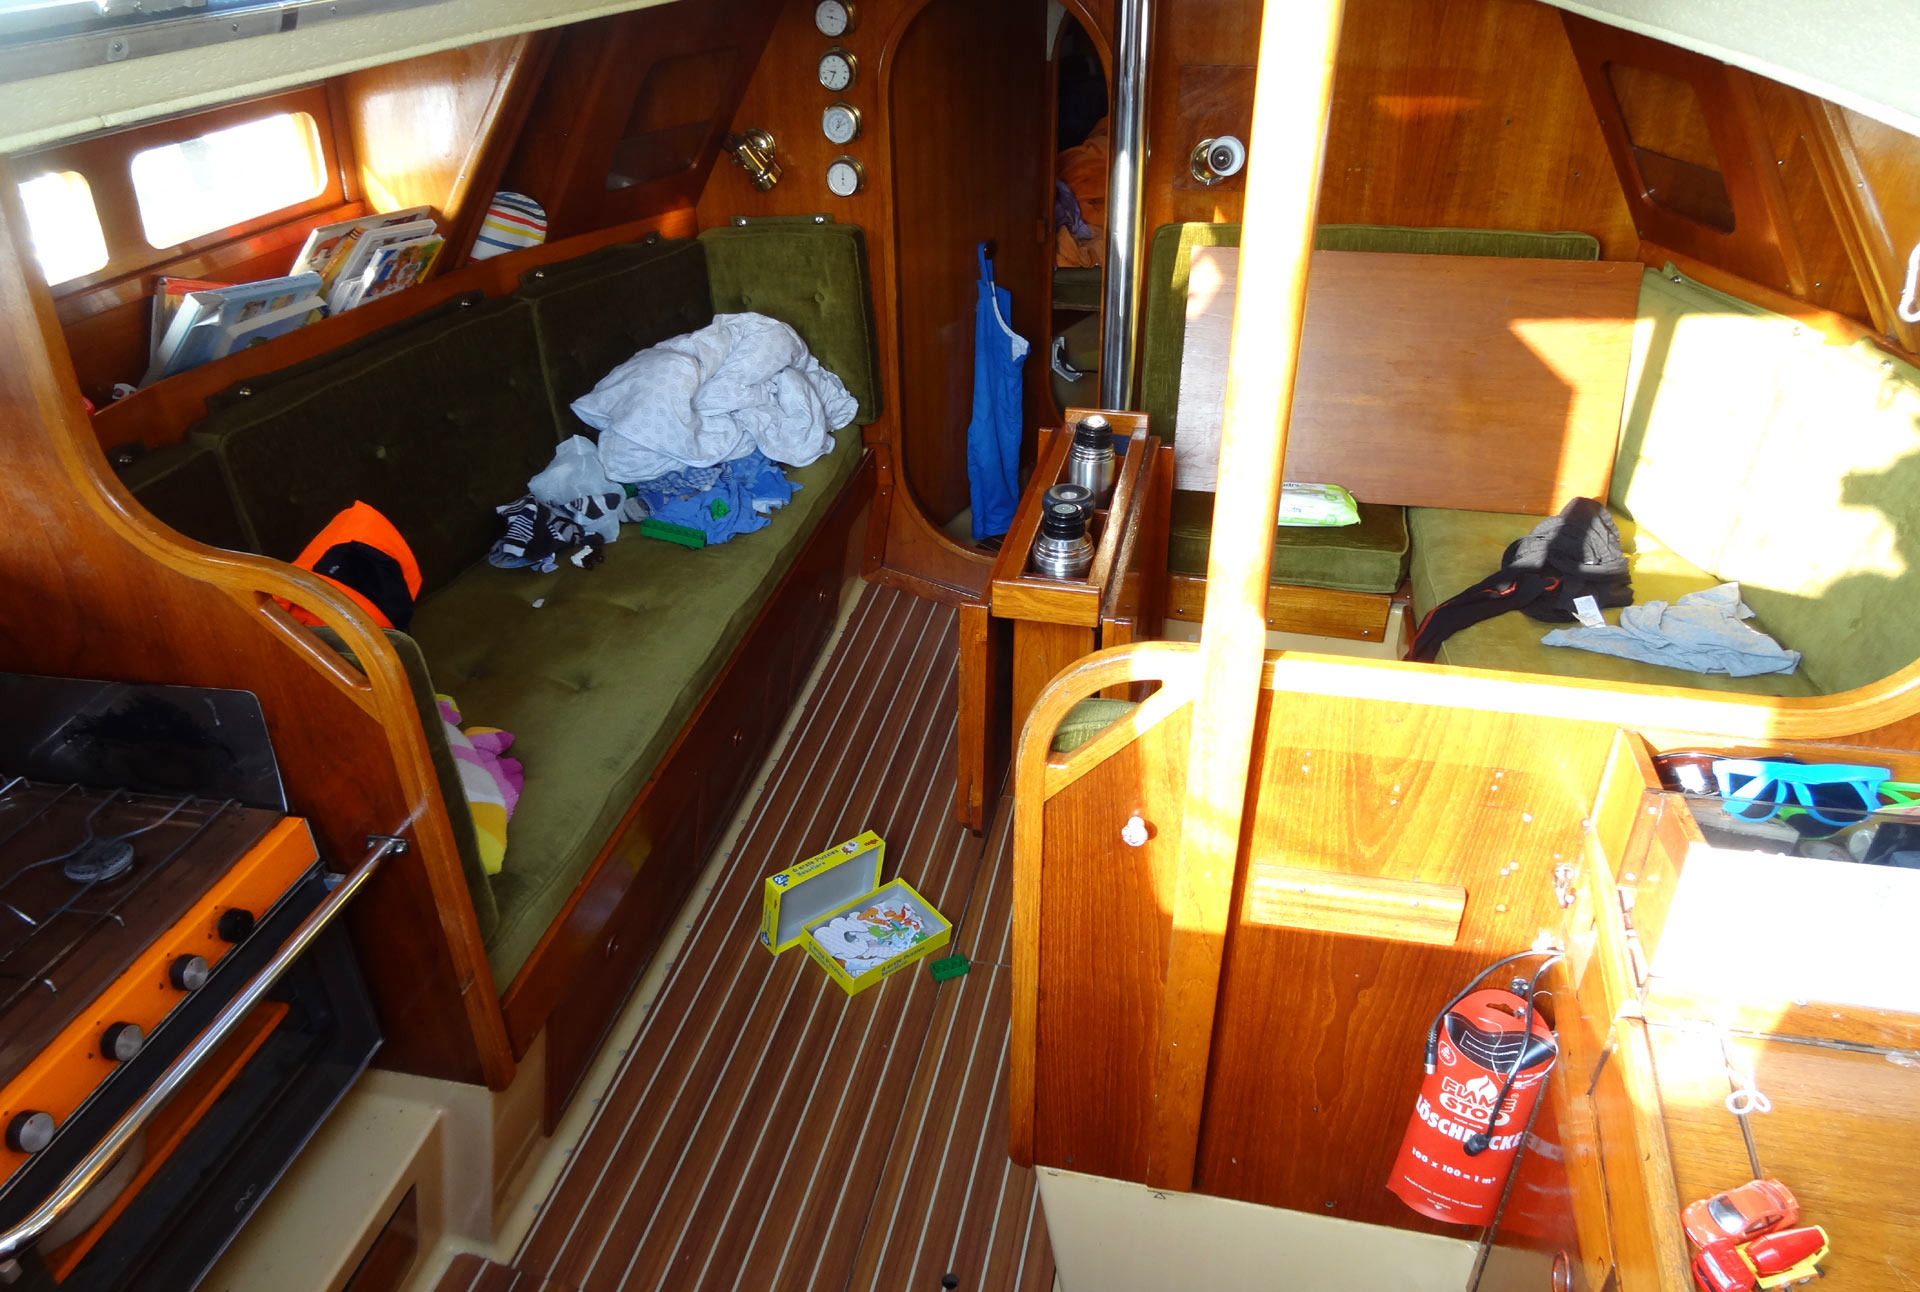 After the trip: The yacht needs a complete cleanup.